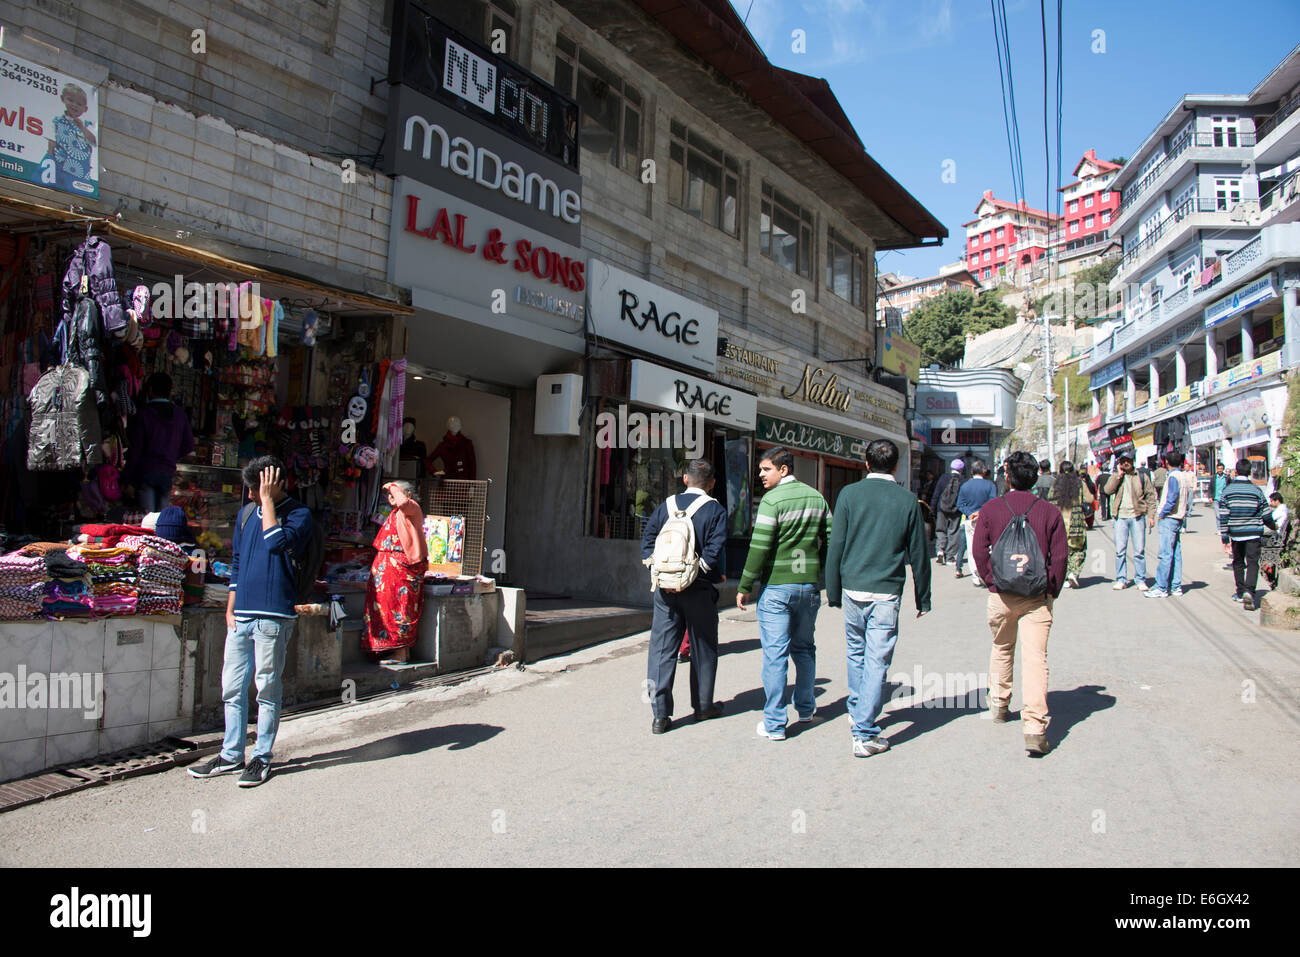 Shopping in Mall Road in Shimla, a popular tourist attraction in Himachal Pradesh,India - Stock Image